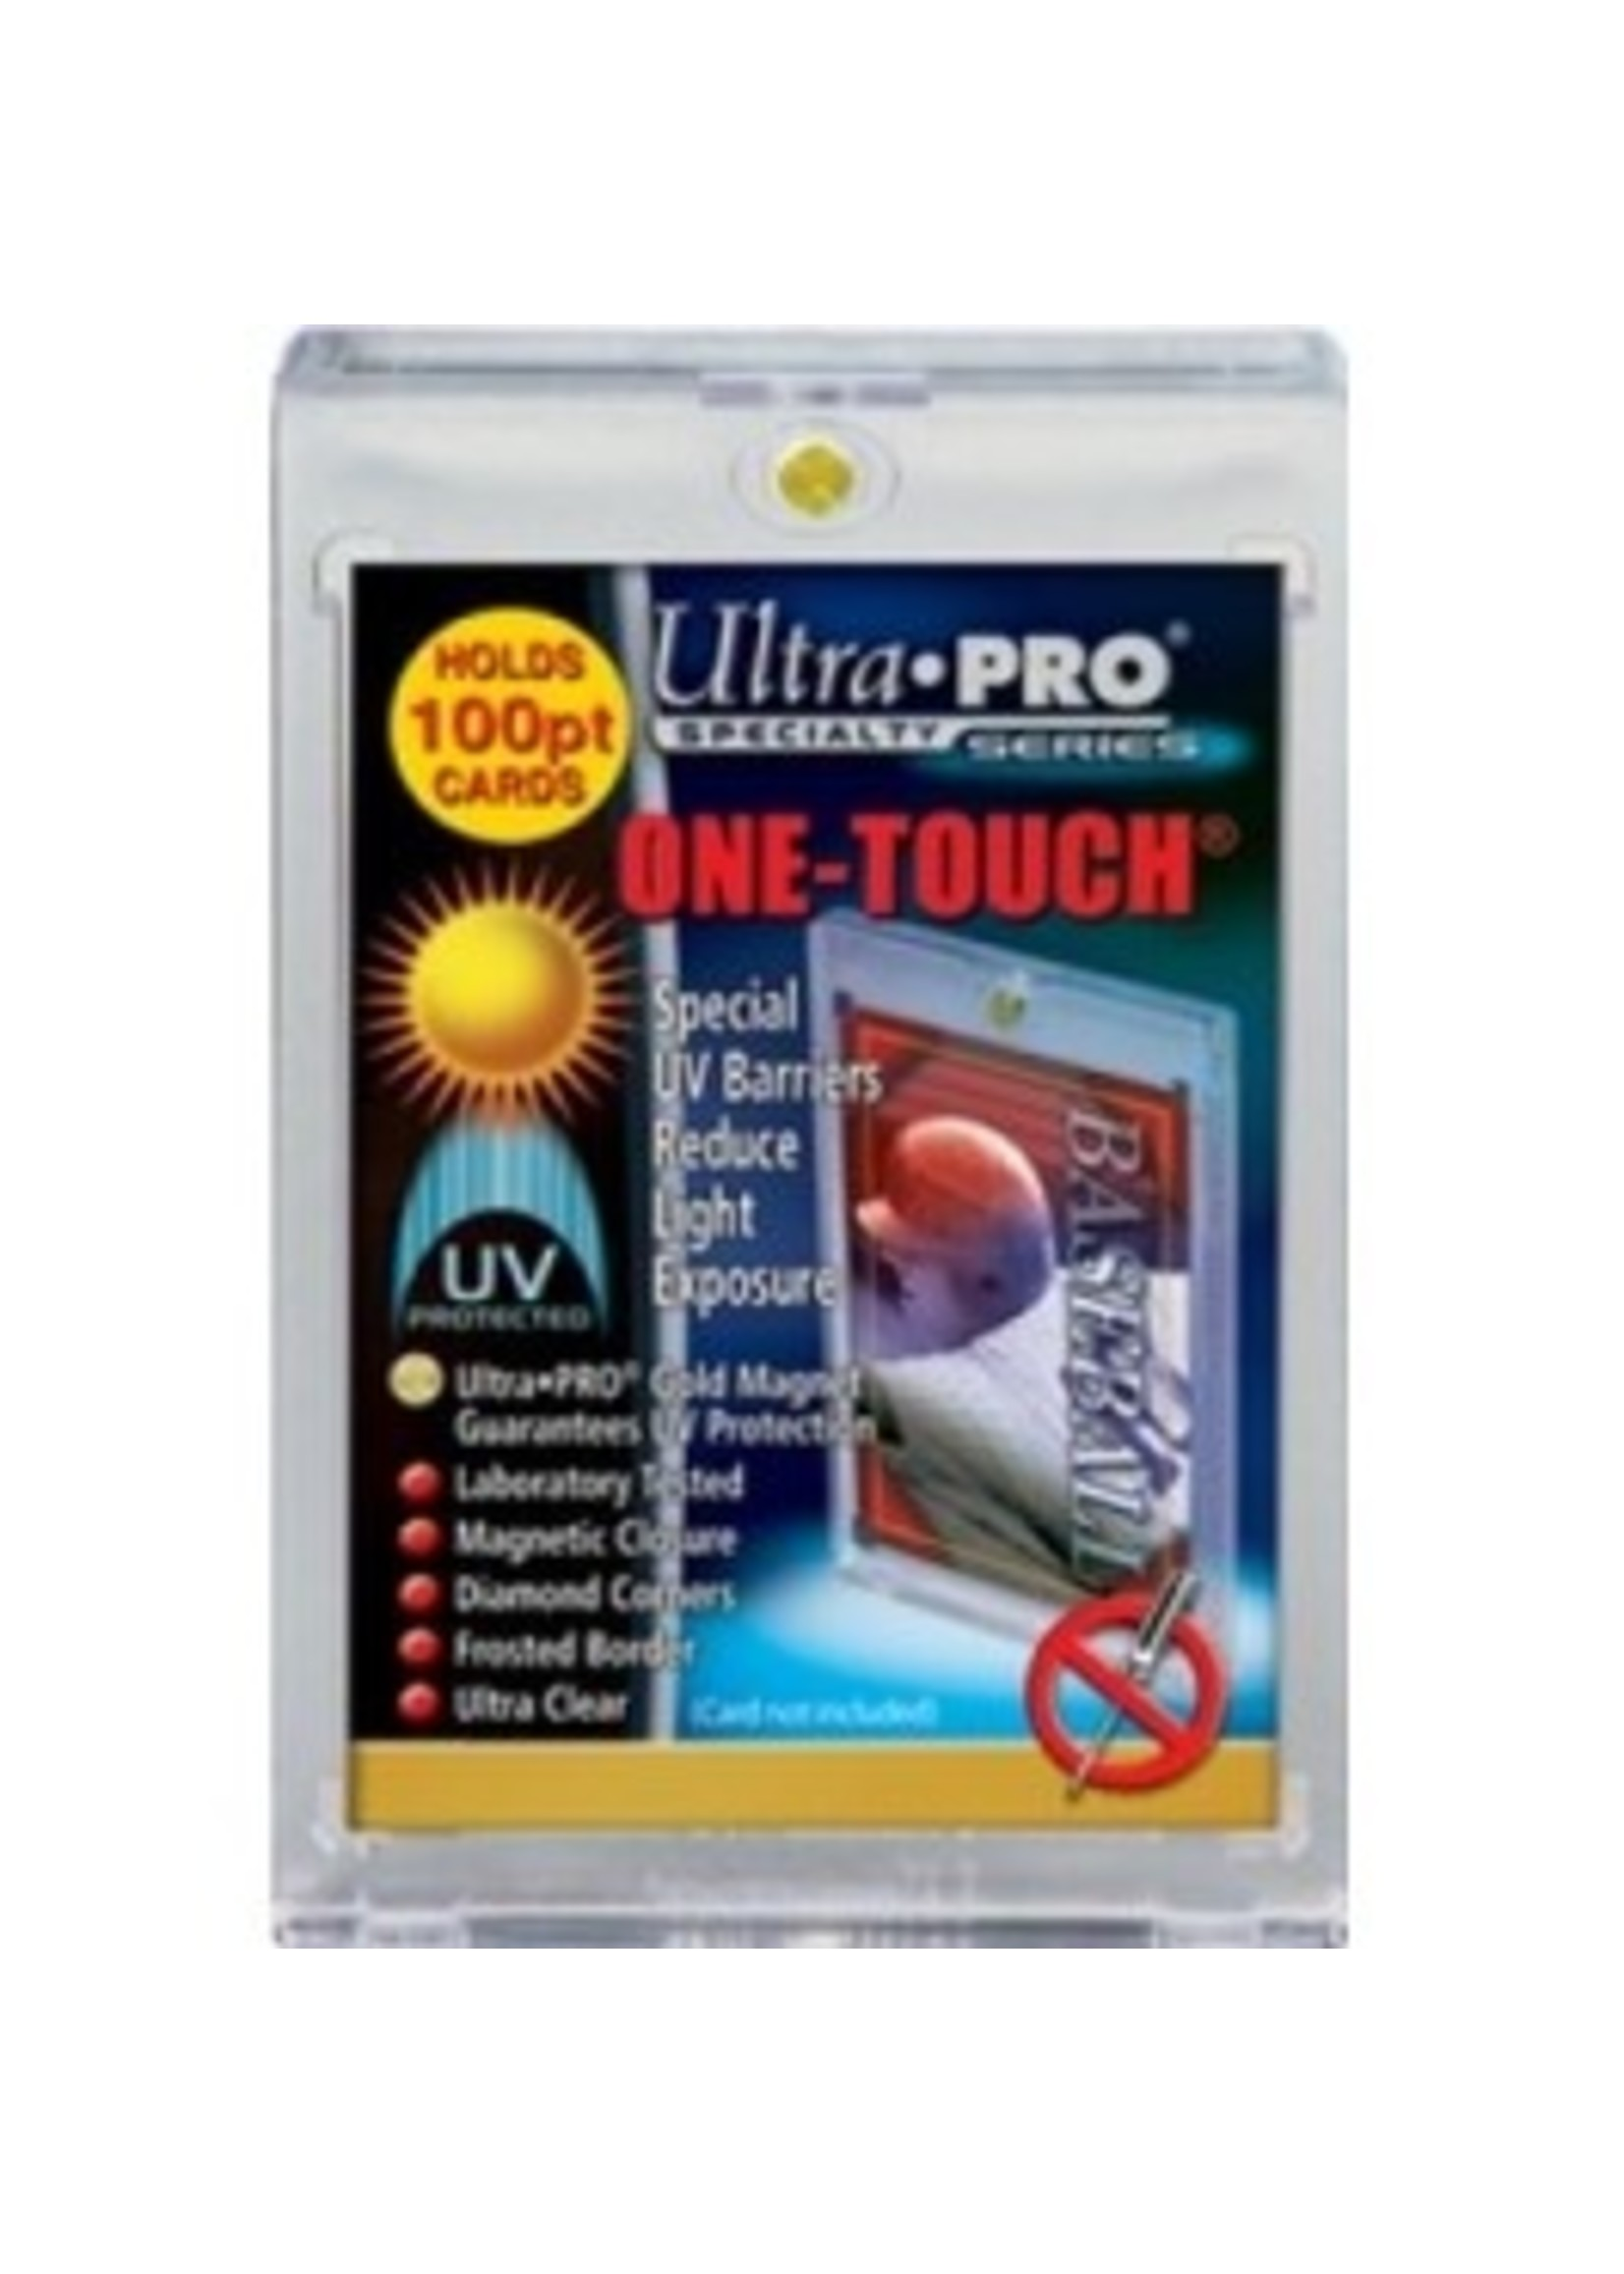 Ultra Pro One Touch 100pt